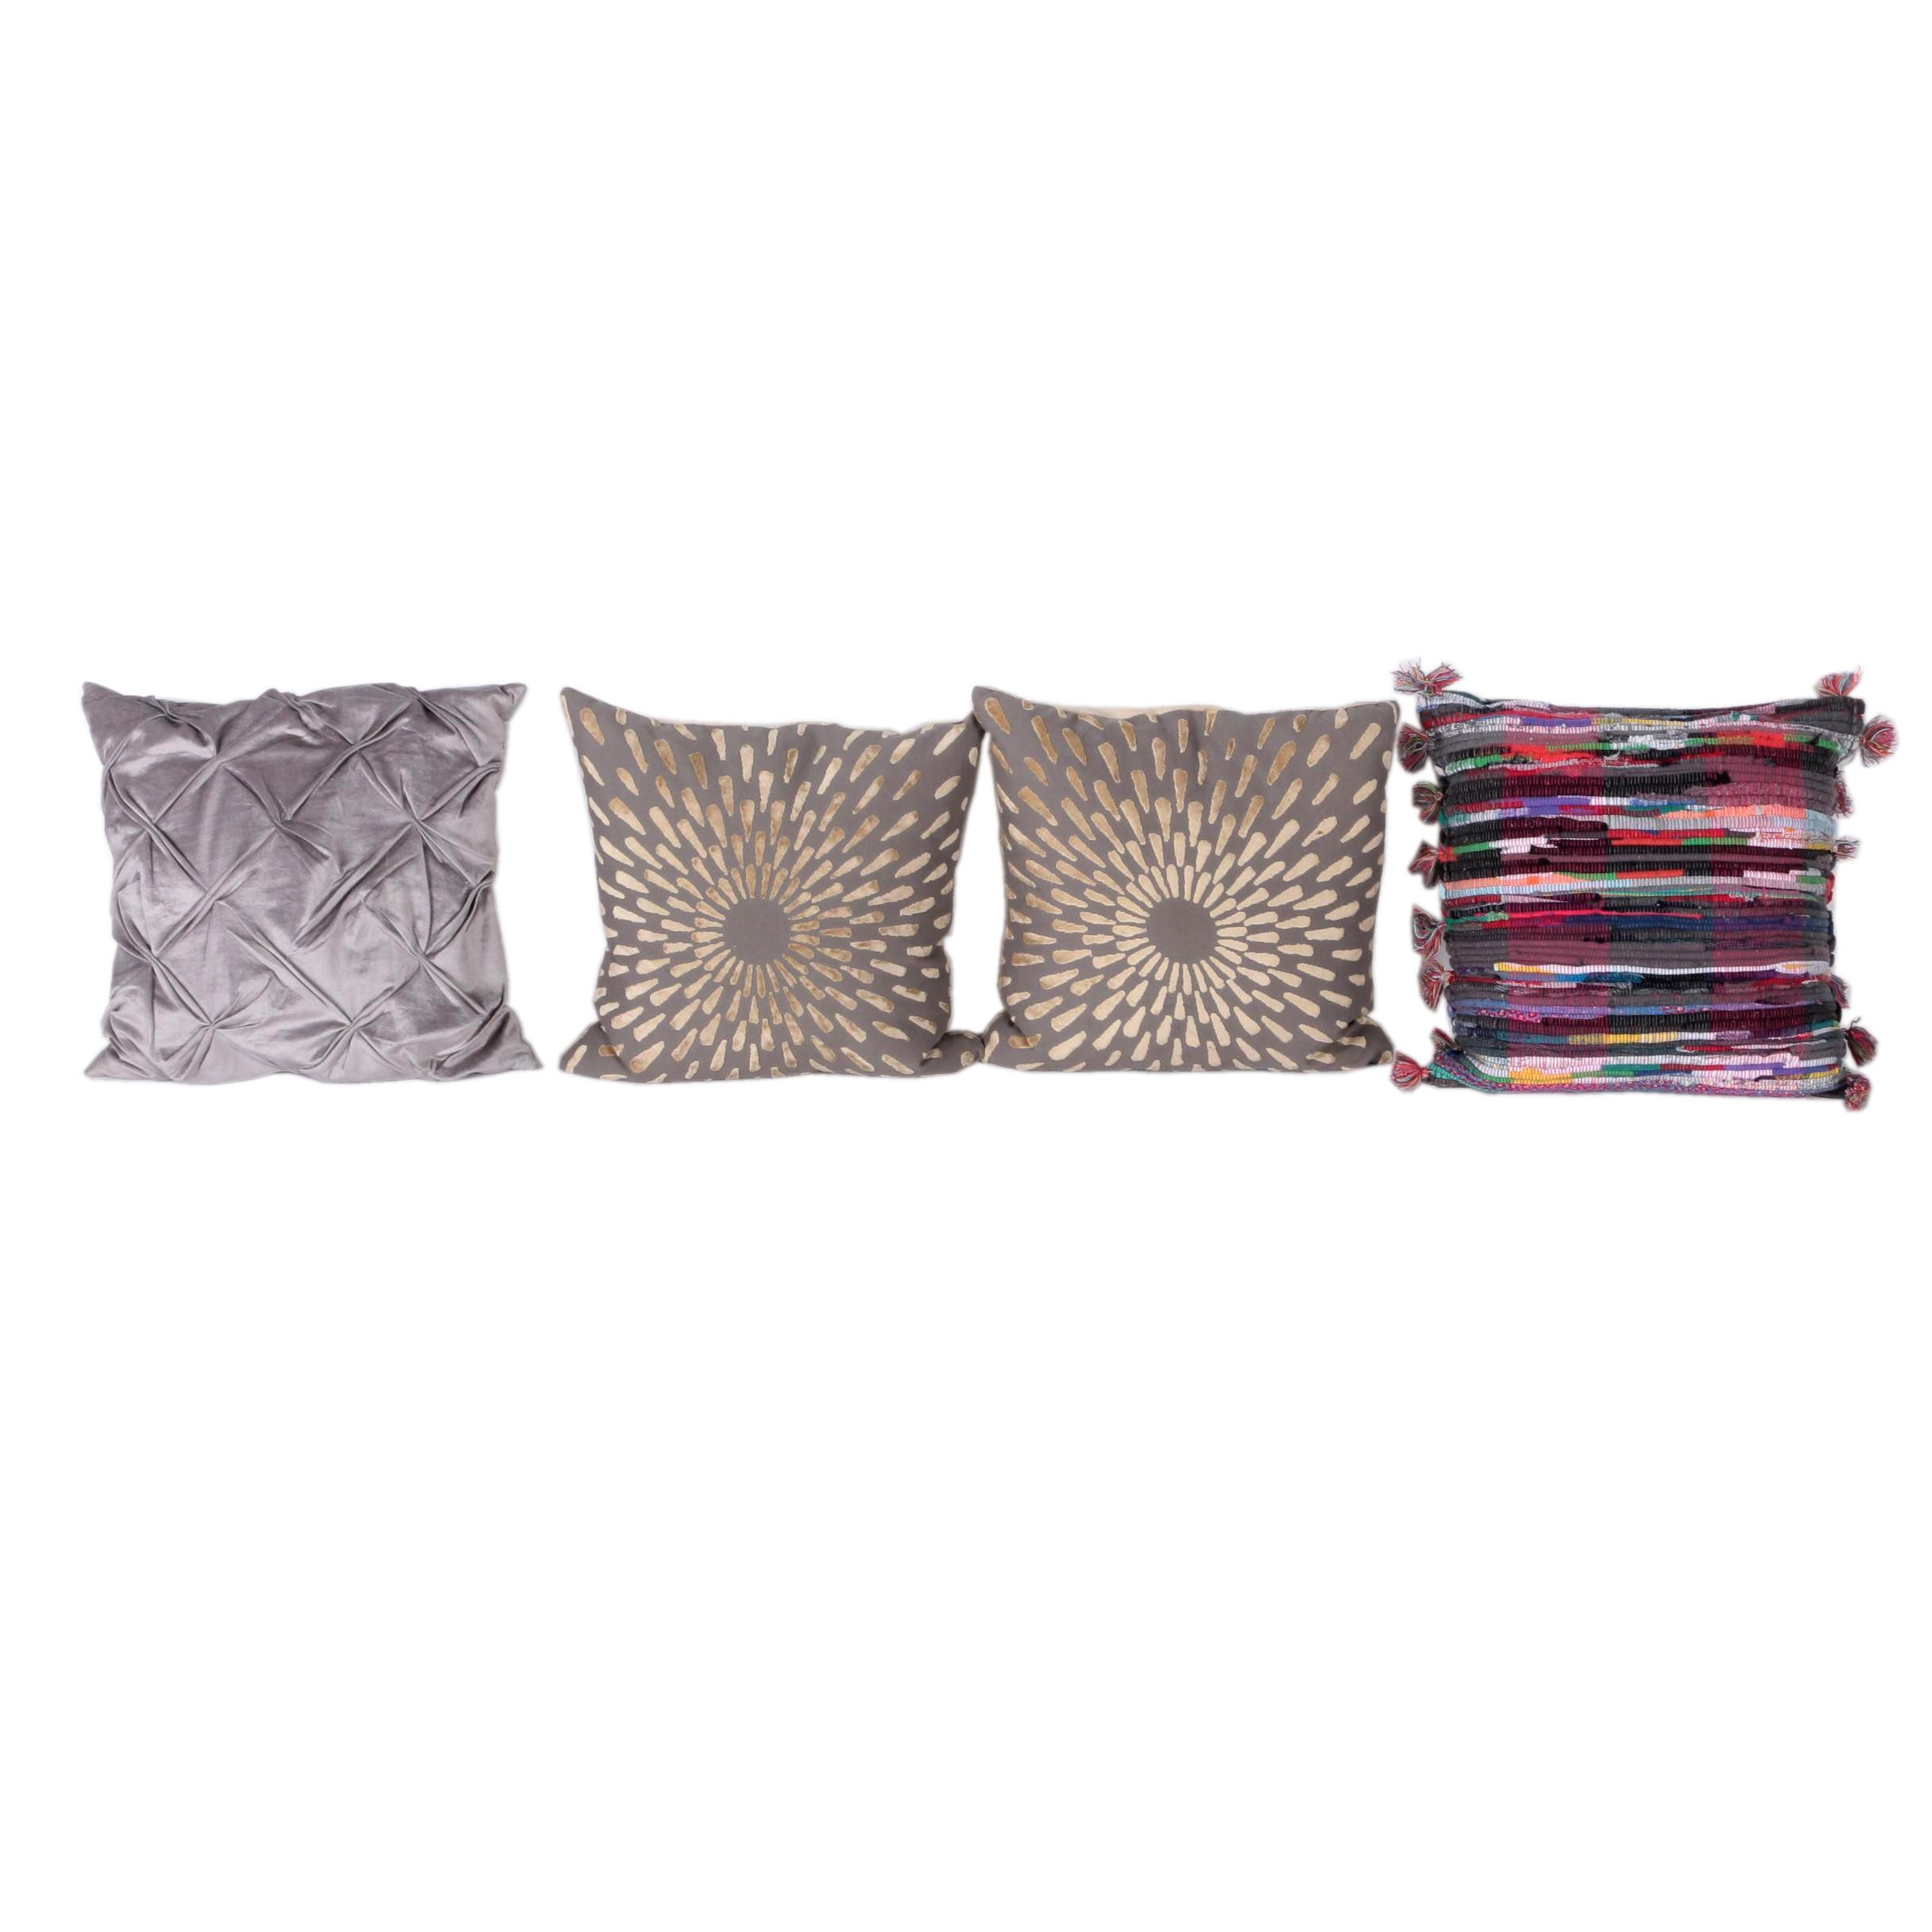 Colorful and Decorative Throw Pillows